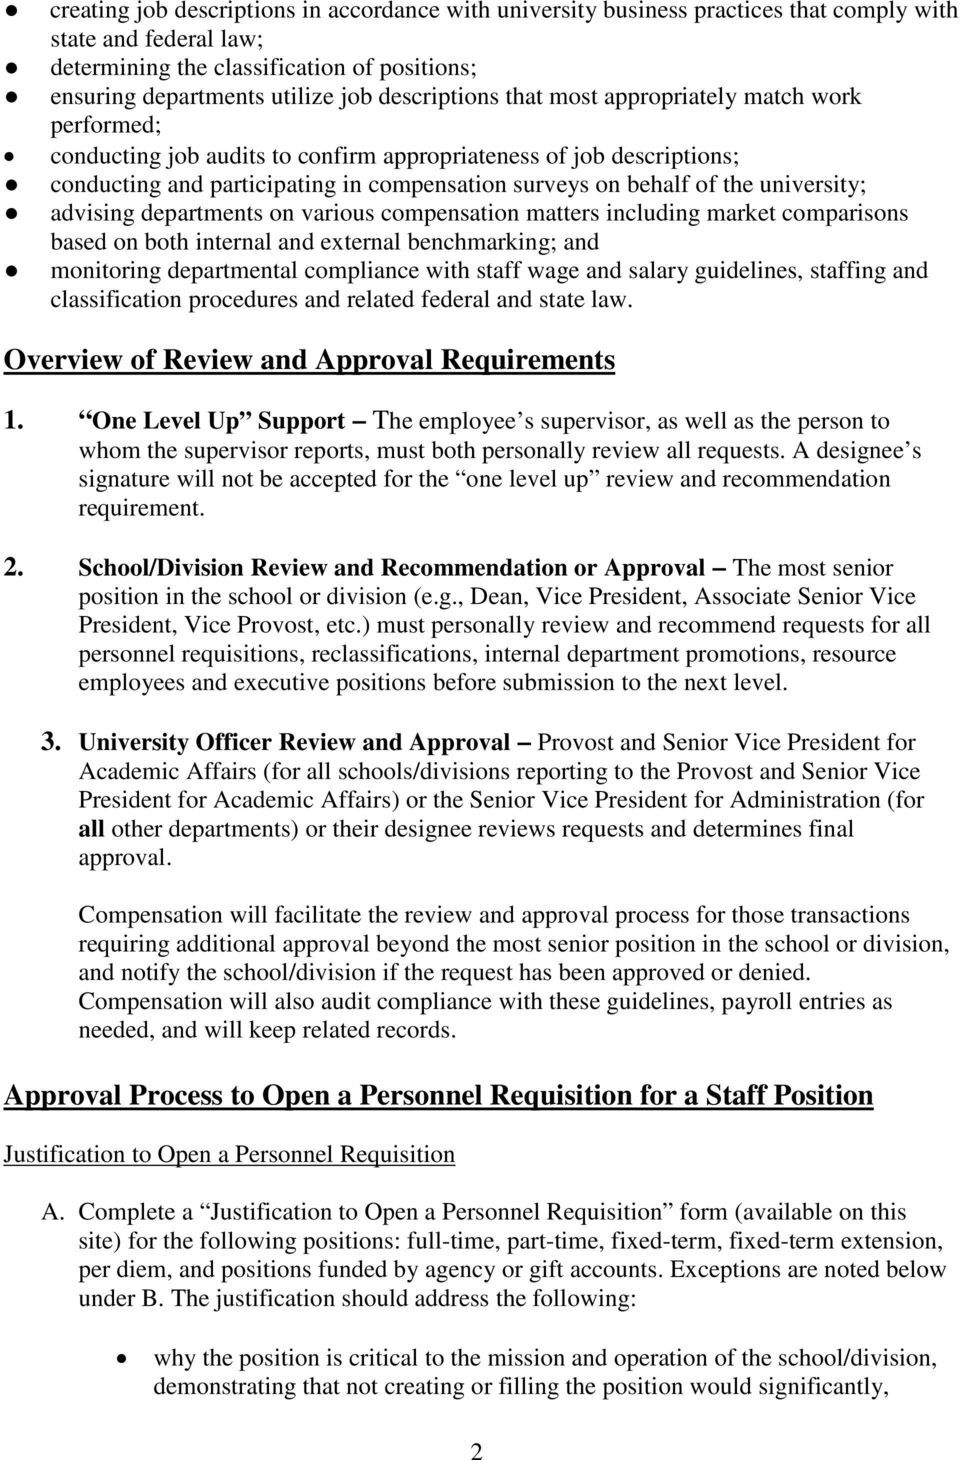 Staffing and Classification Procedures - PDF